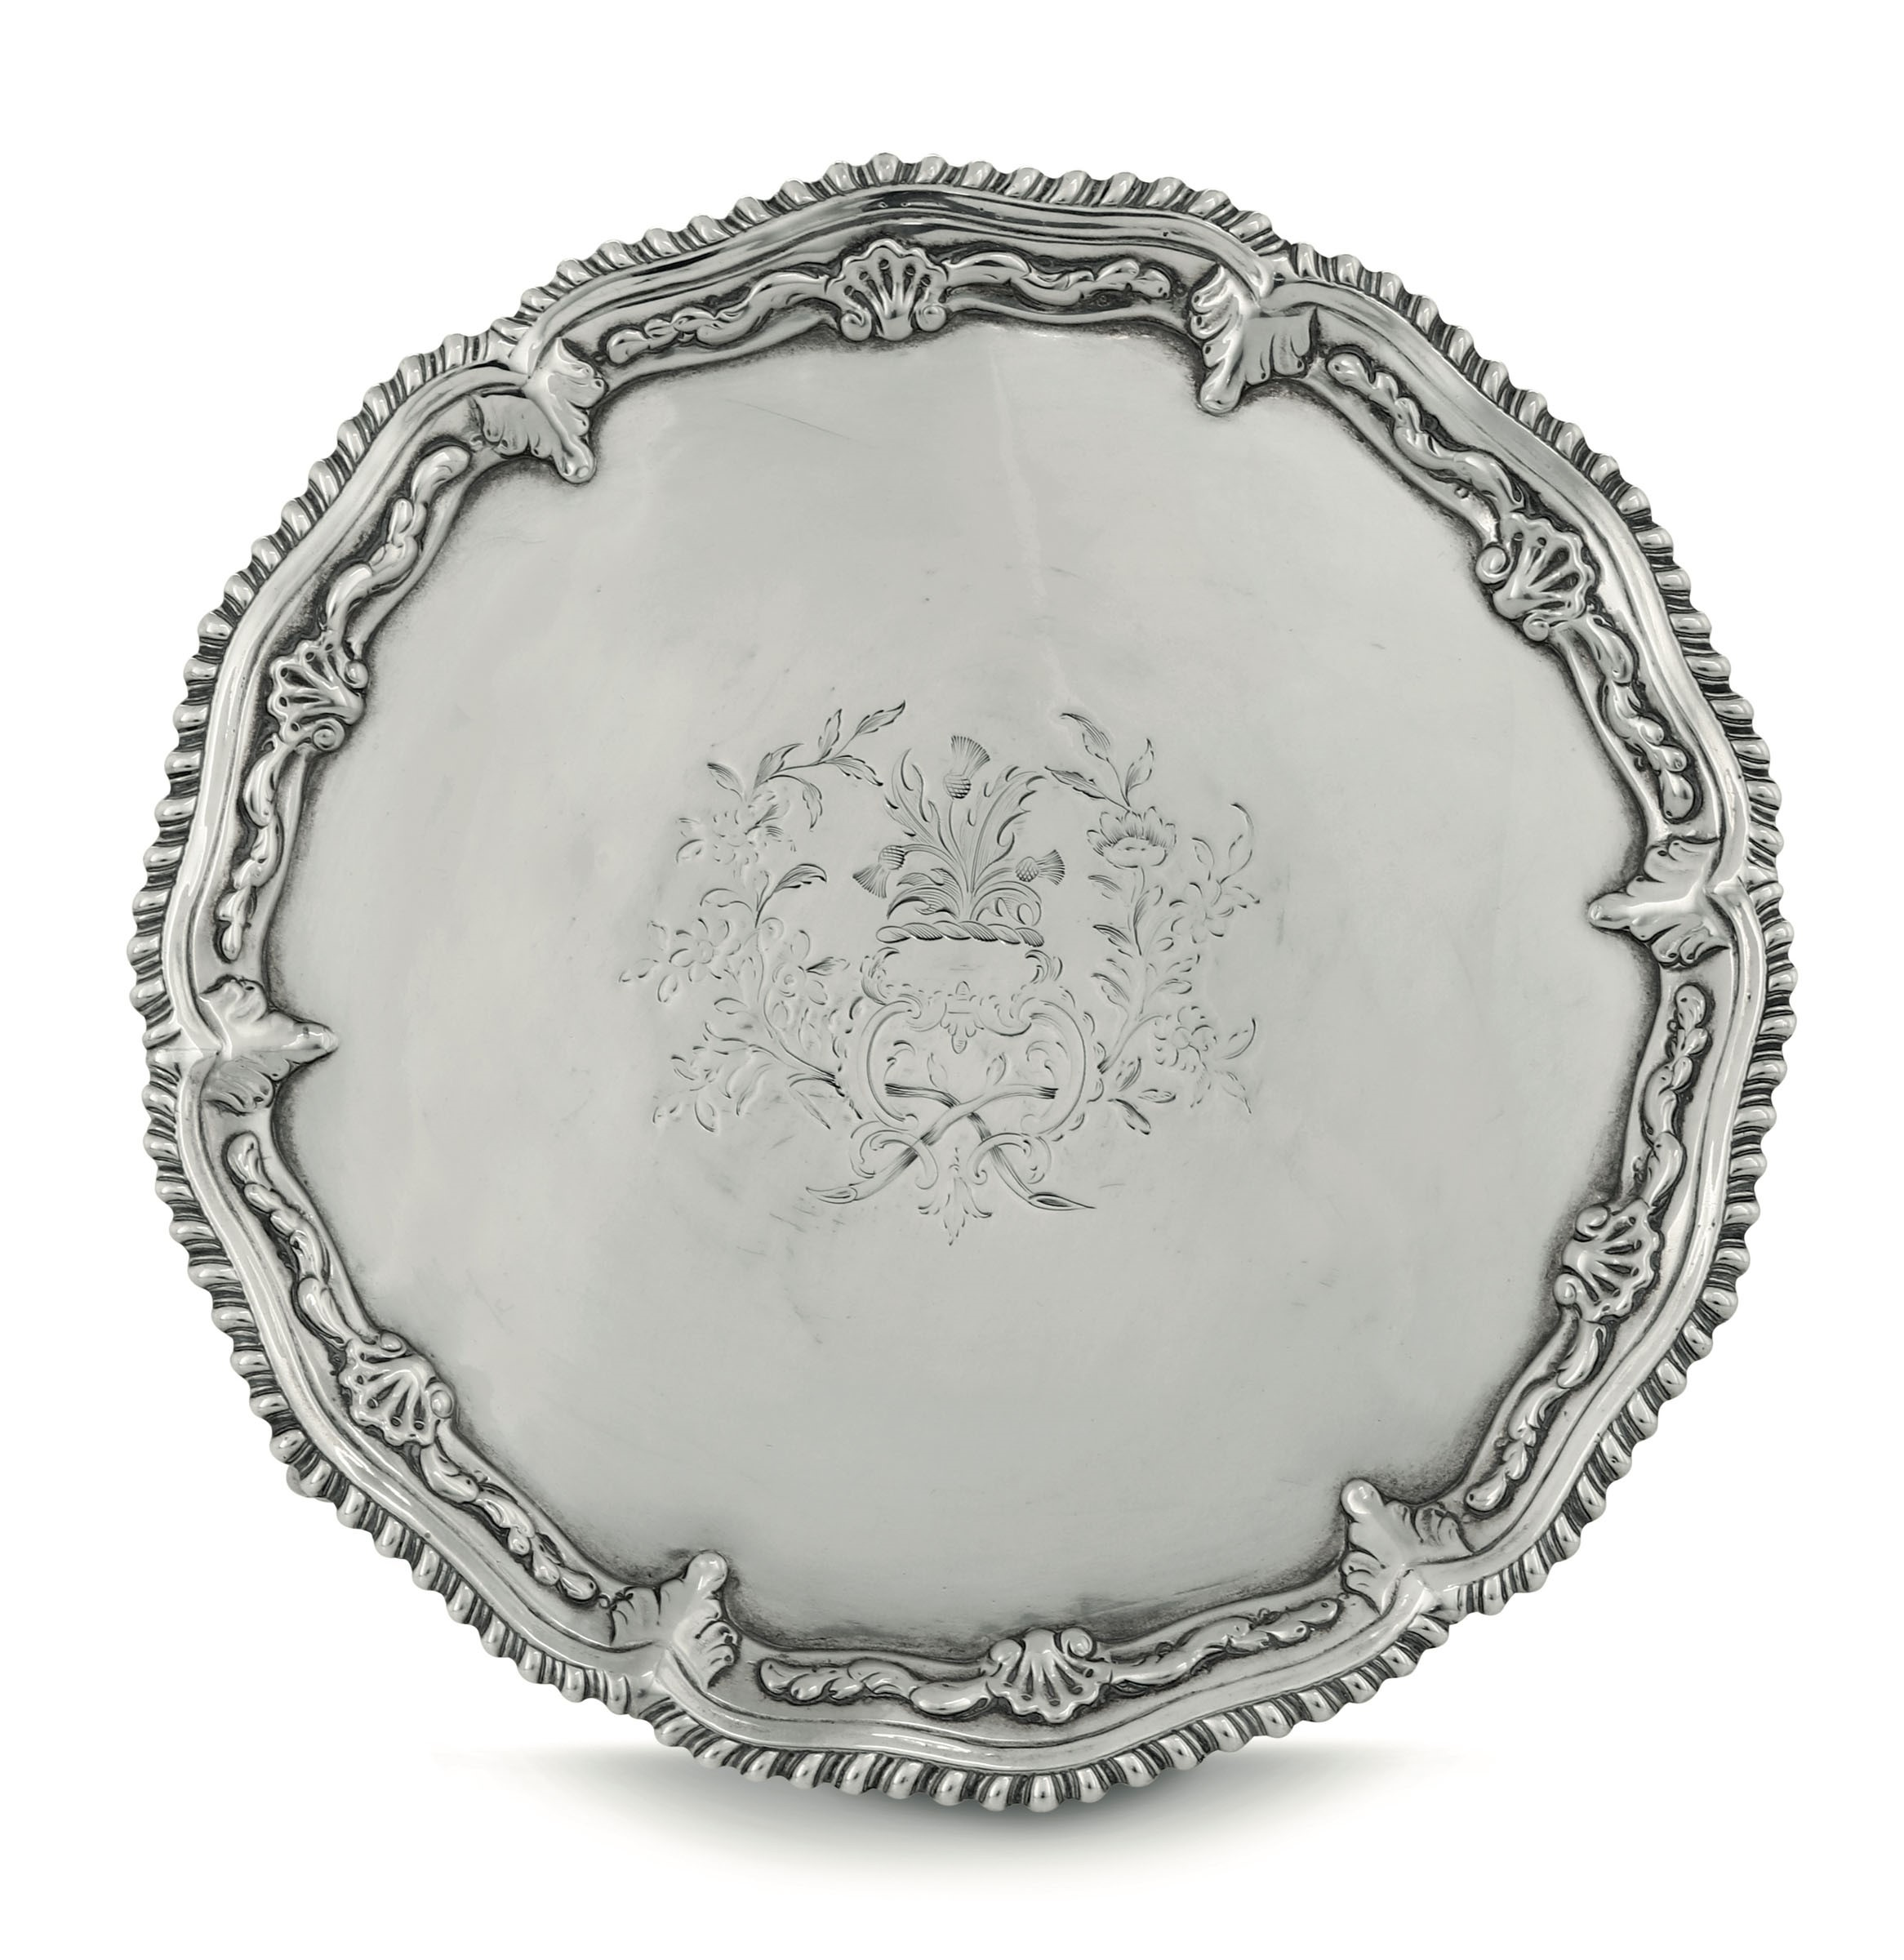 Lot 14 - A silver salver, London, 1765 - Molten, embossed and chiselled sterling silver. [...]